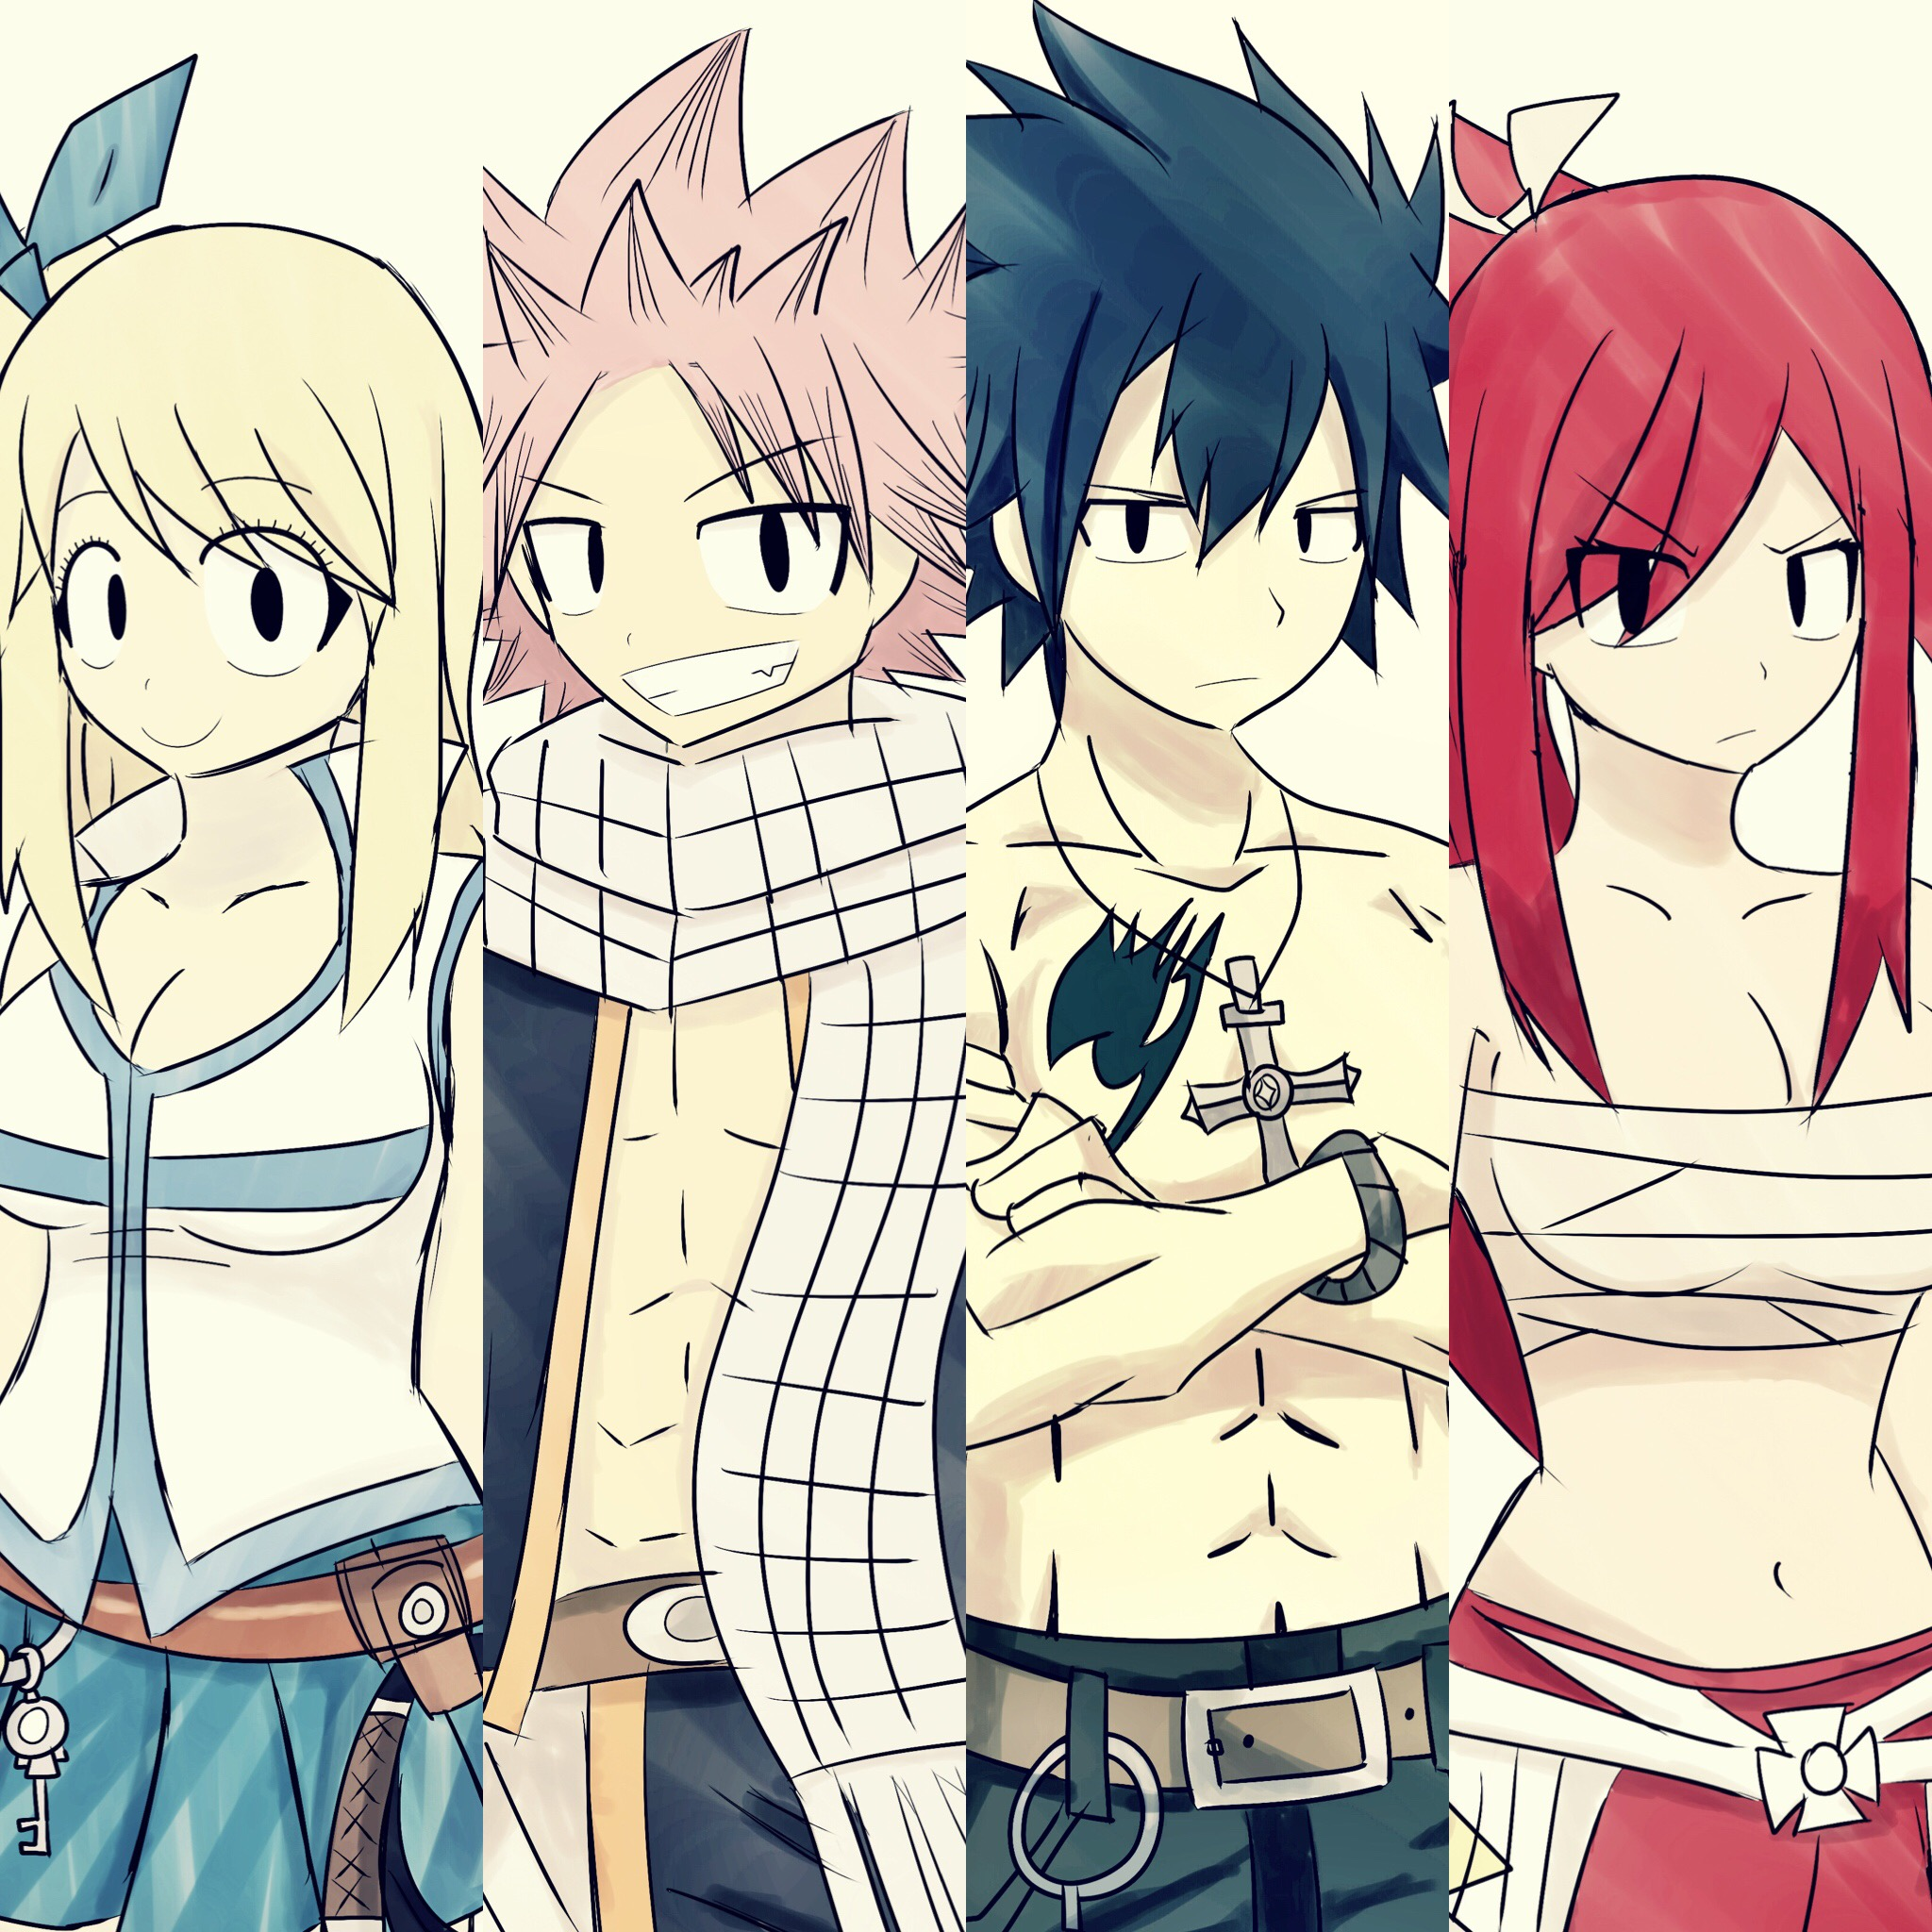 2048x2048 The 4 Fairy Tail Drawings I'Ve Made All Put Together. Fairytail